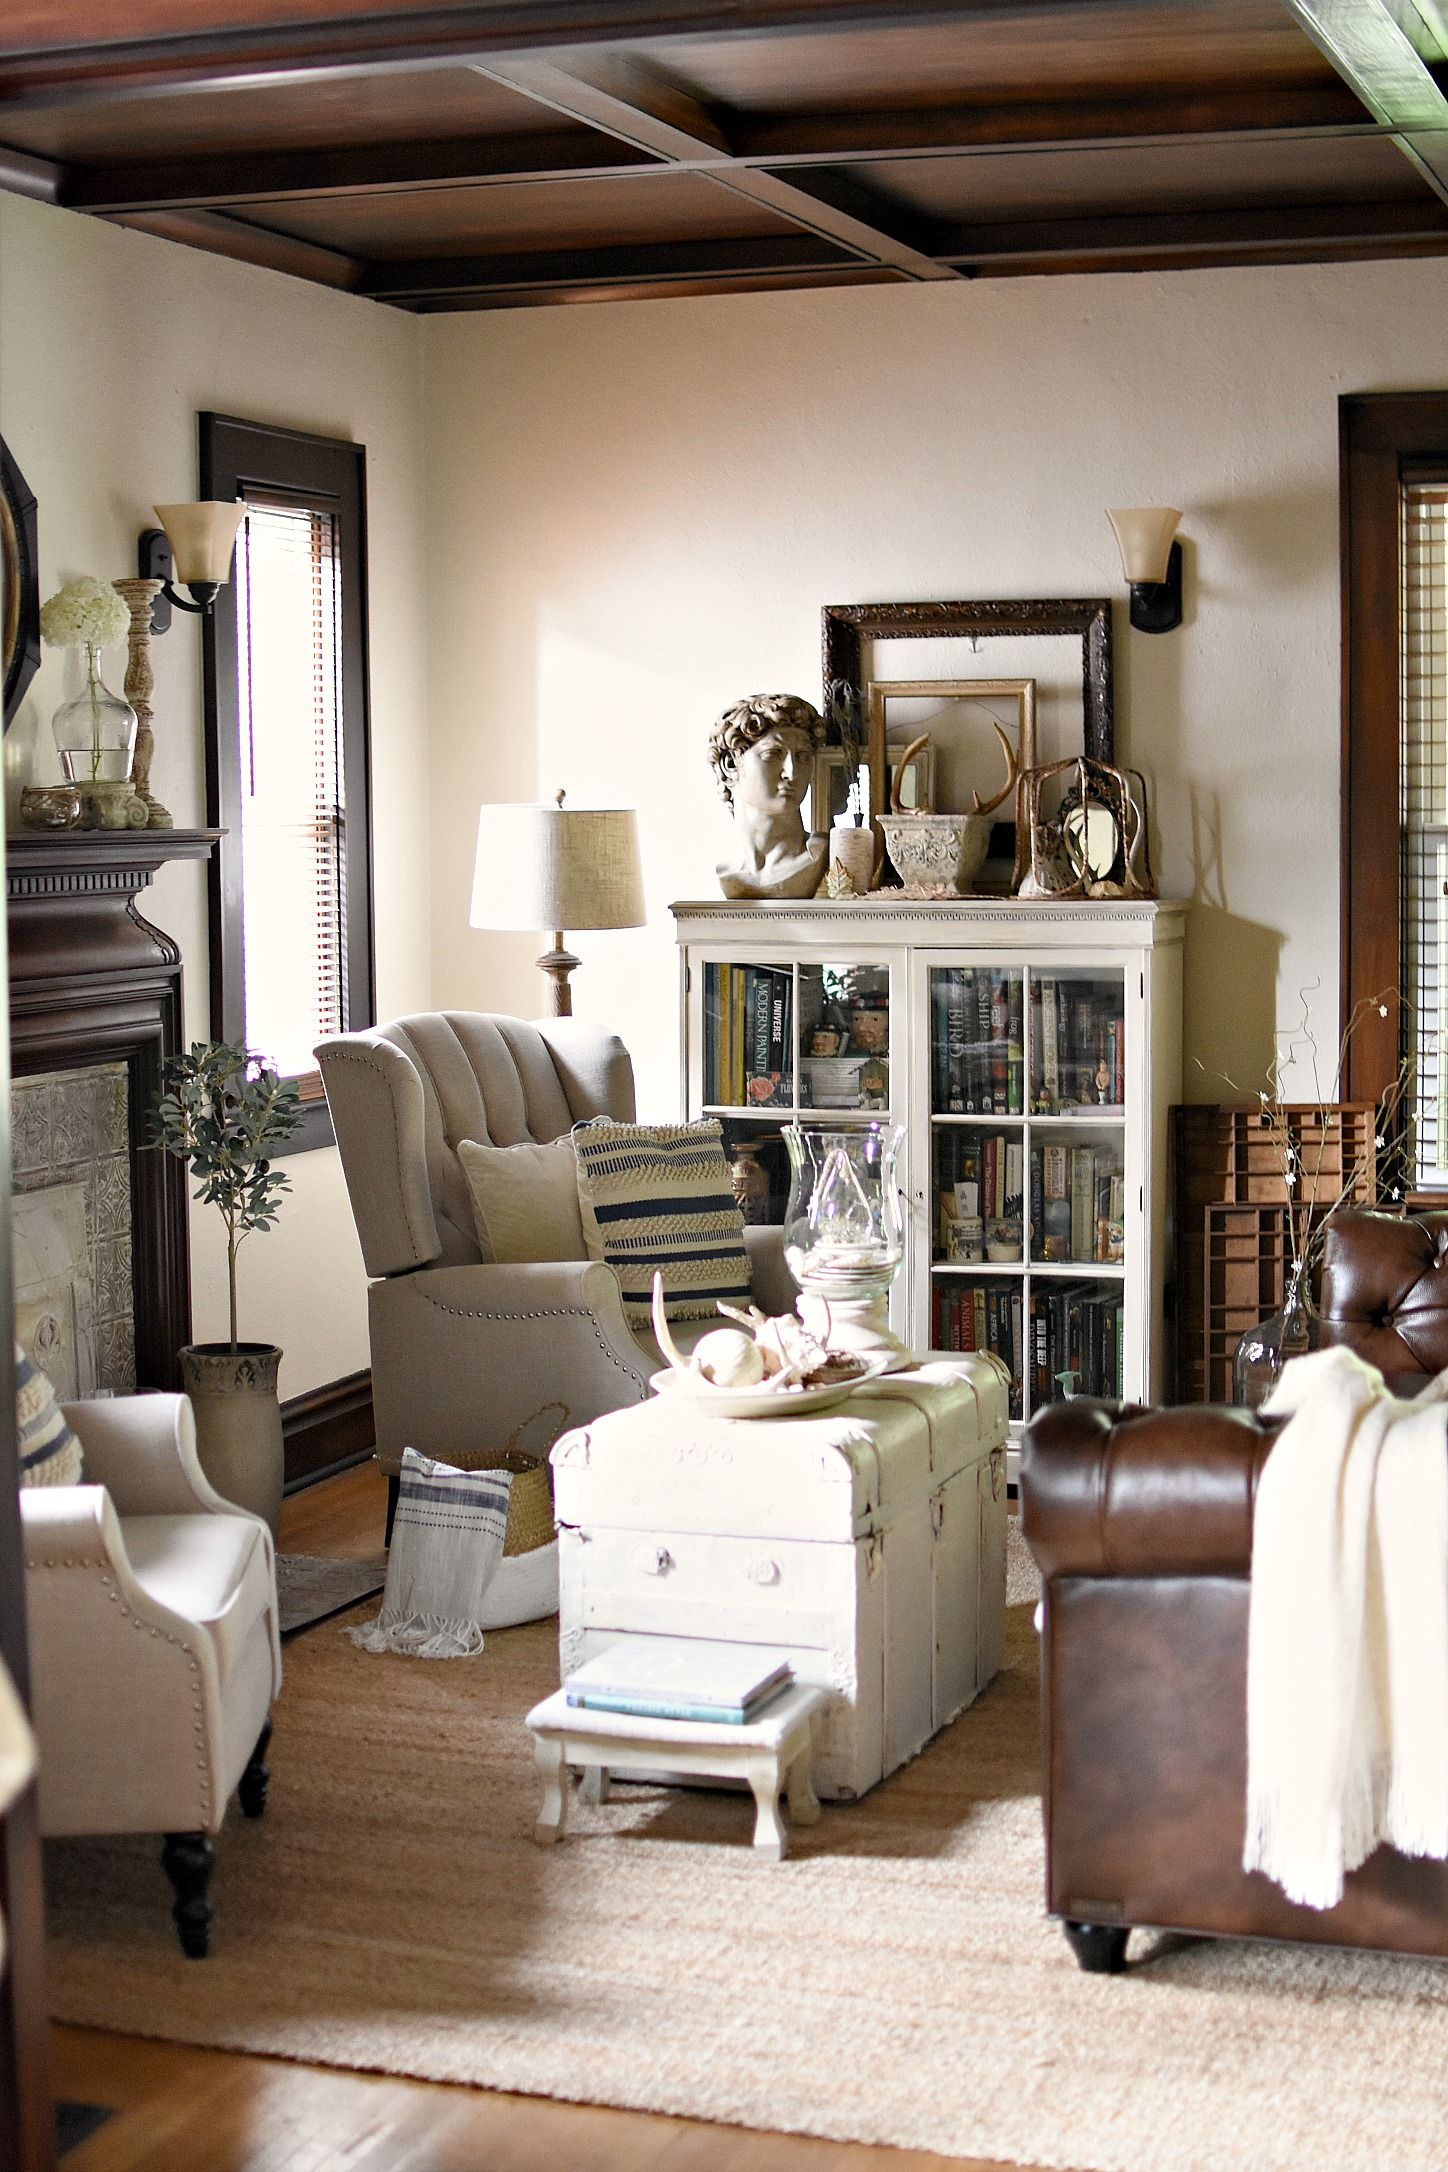 Tour A 1921 Historic Kentucky Home Decorated For Summer In ...